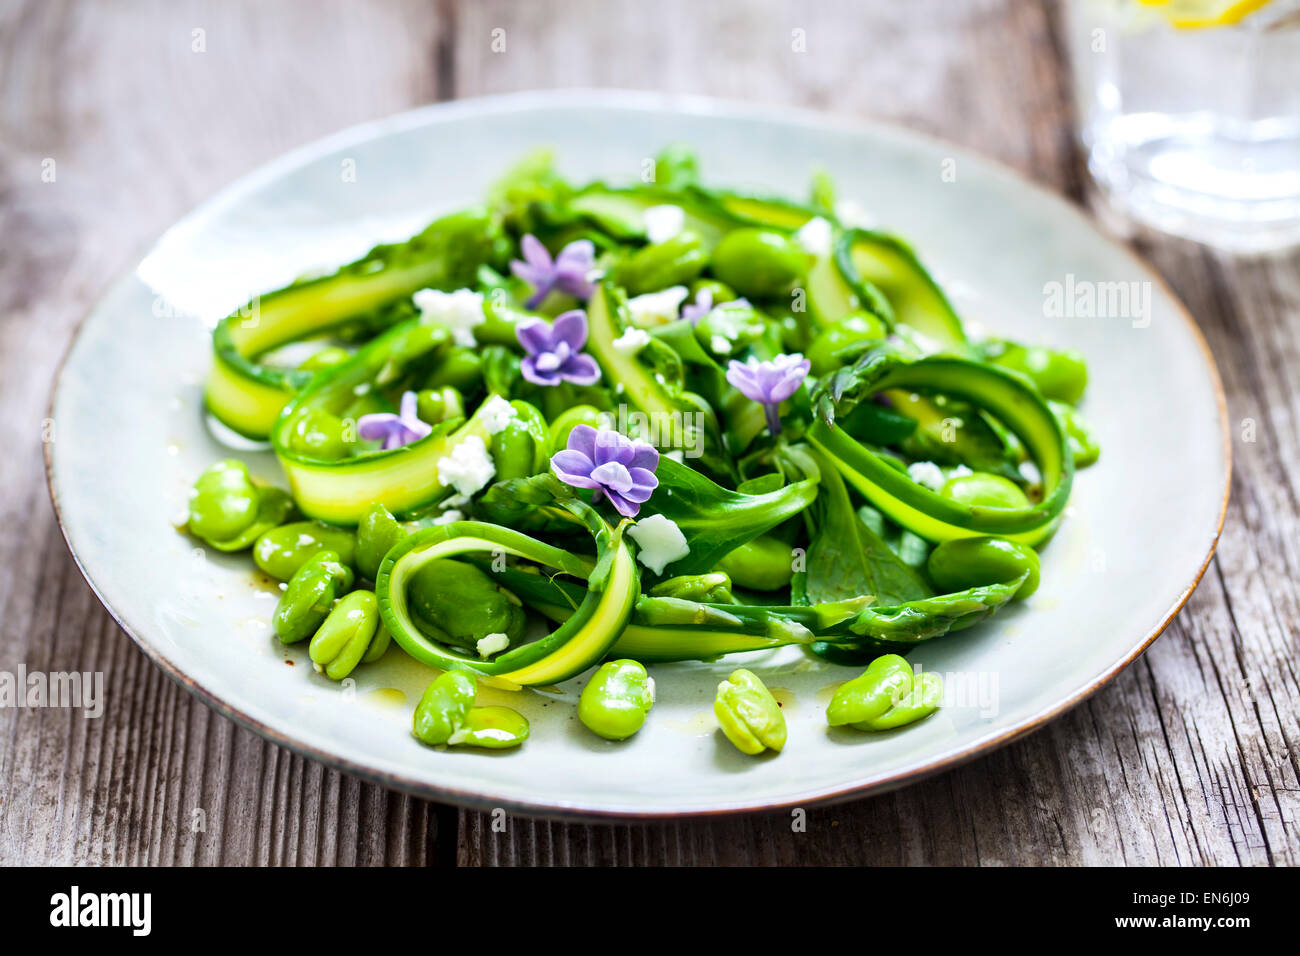 Asparagus, broad beans and lilac salad - Stock Image